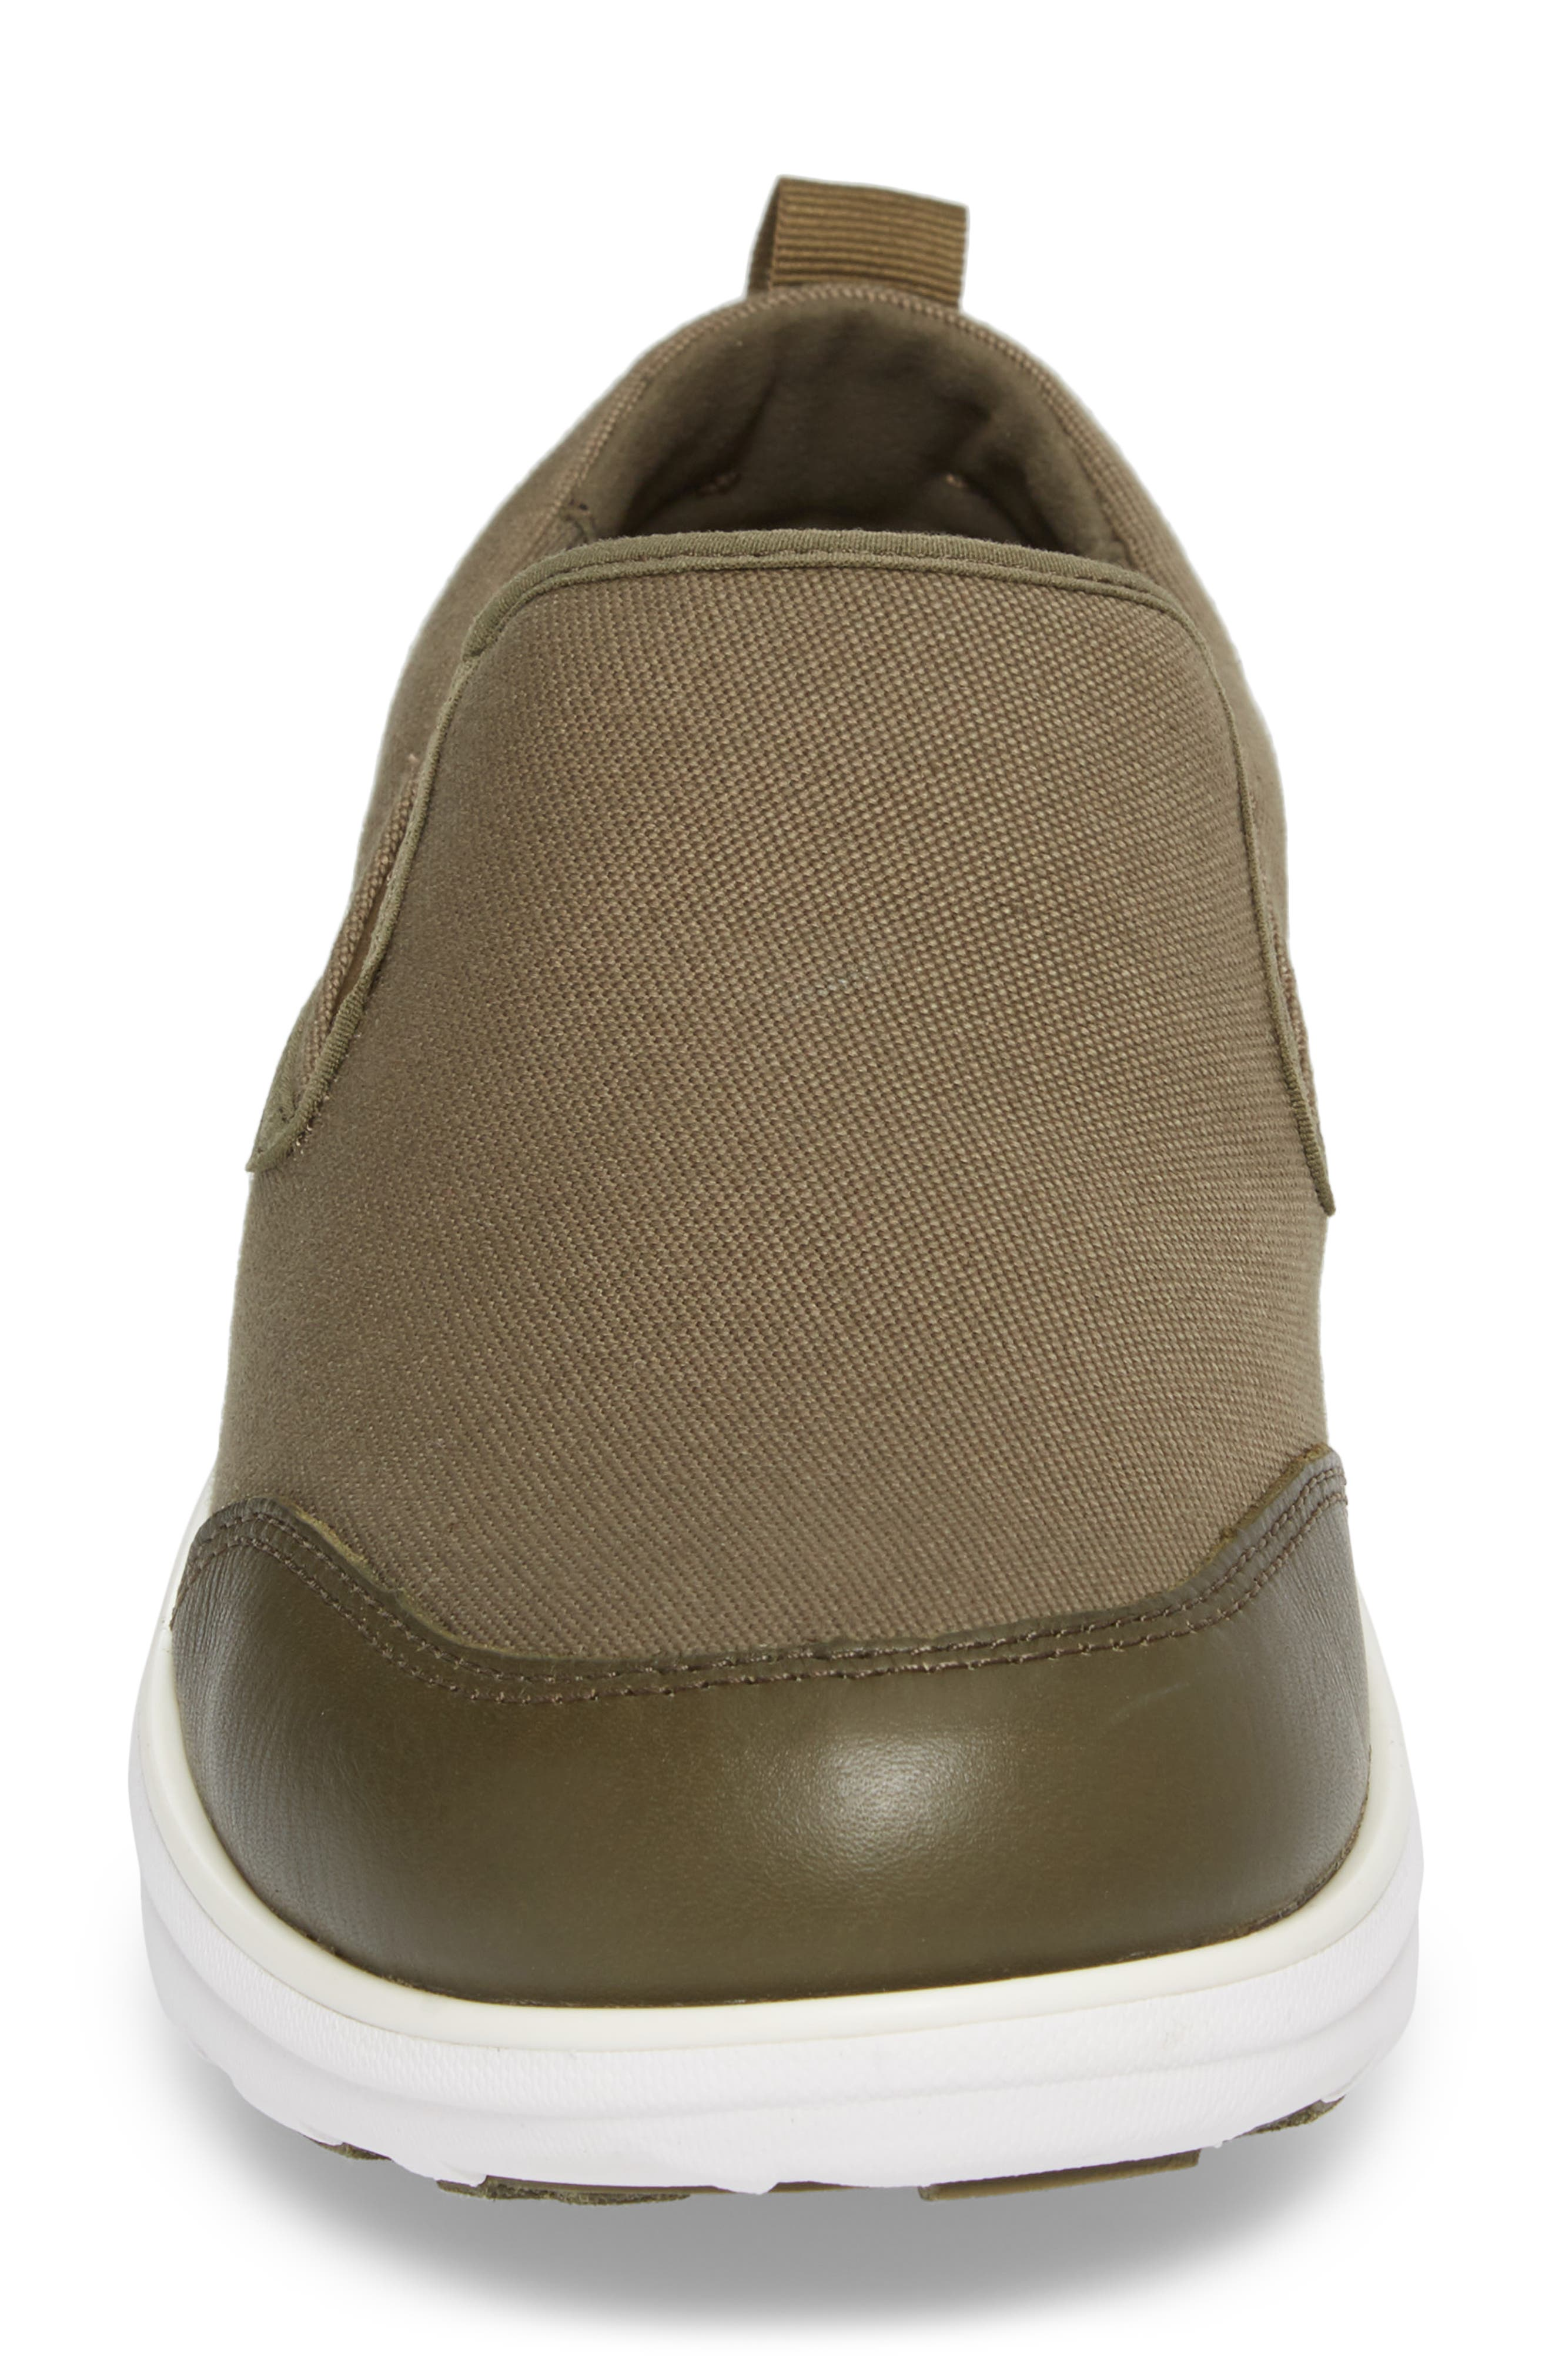 Loaff Skate In Slip-On Sneaker,                             Alternate thumbnail 4, color,                             CAMOUFLAGE GREEN